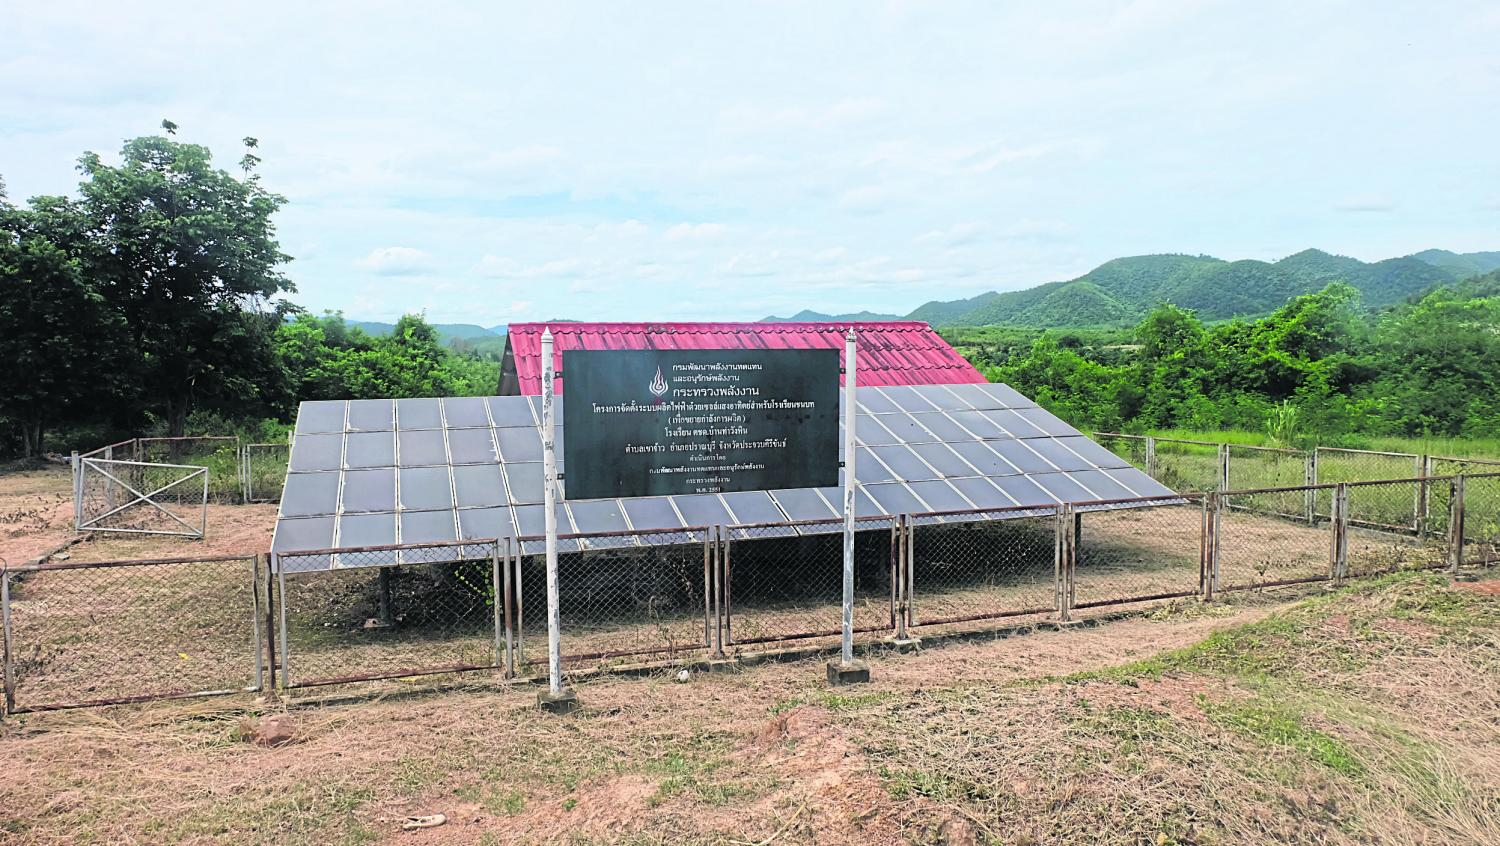 The solar energy system is described as a graveyard because some batteries have broken down.(Photo by Thana Boonlert)